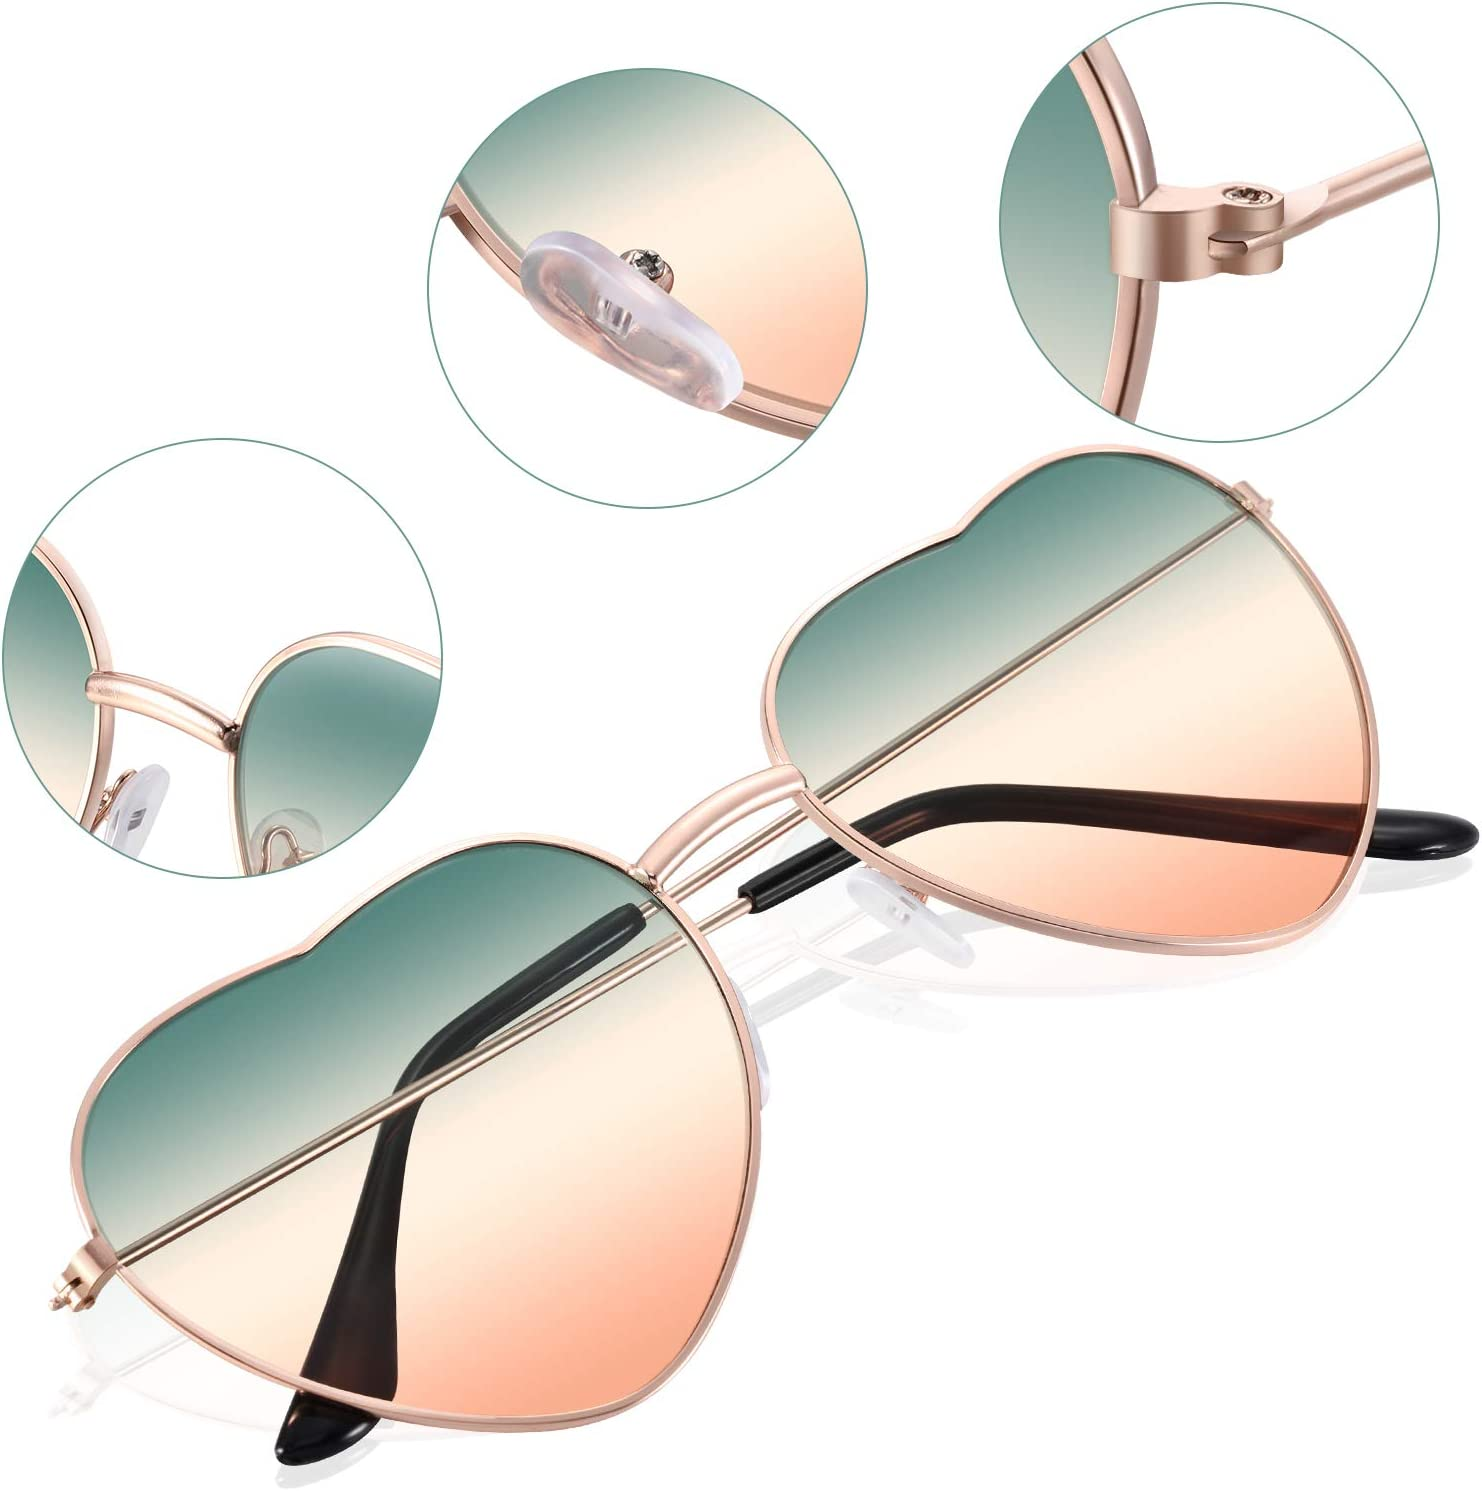 Eyewear 2 Pairs Hippy Specs Glasses Heart Shaped Sunglasses For Hippie Fancy Dress Accessory Gradient Blue Lens Rose Gold Frame Clothing Shoes Jewelry Samel Com Br